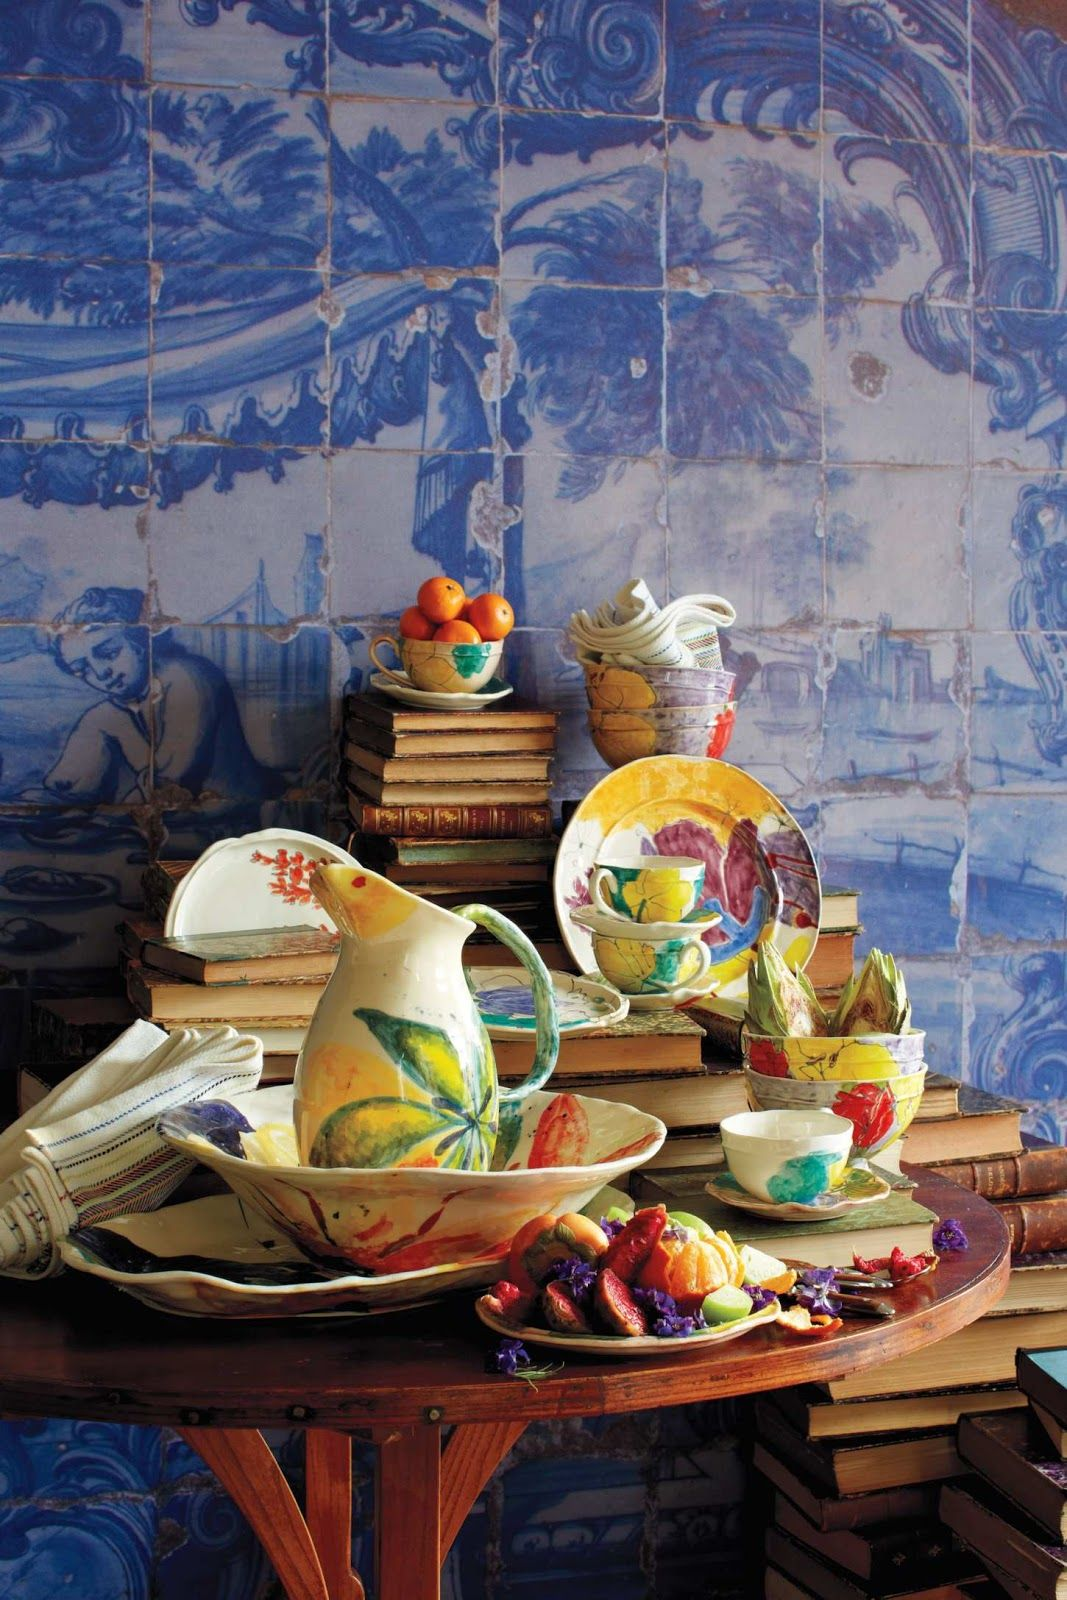 colorful display of books and dishes